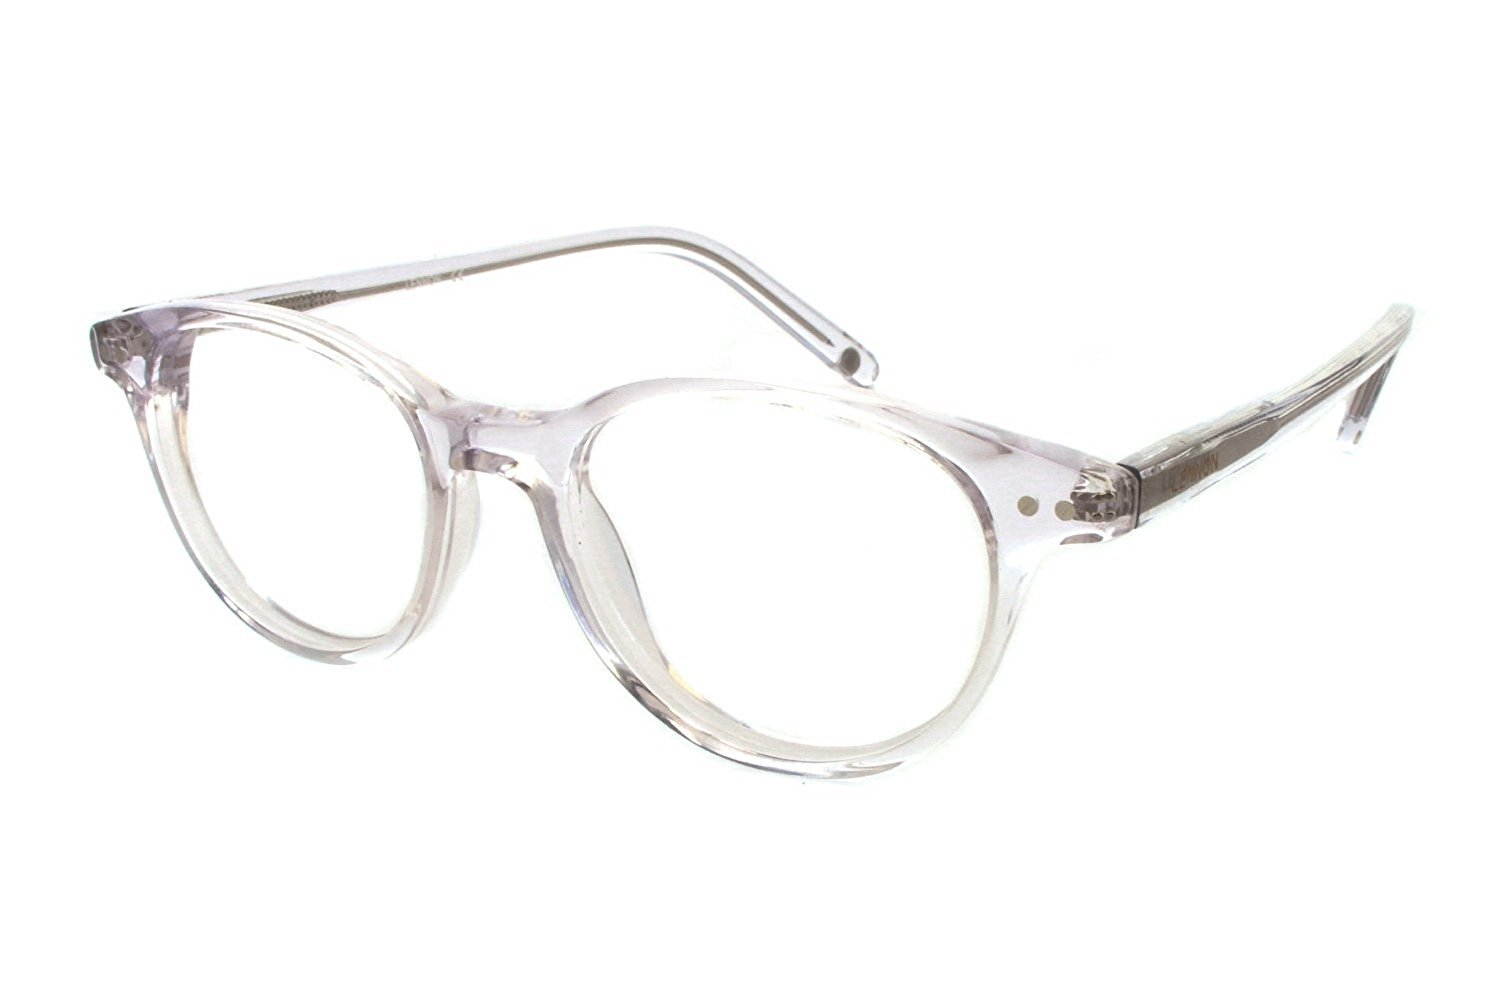 9a629bc8b1 Get Quotations · Lennon L3006 Mens Eyeglass Frames